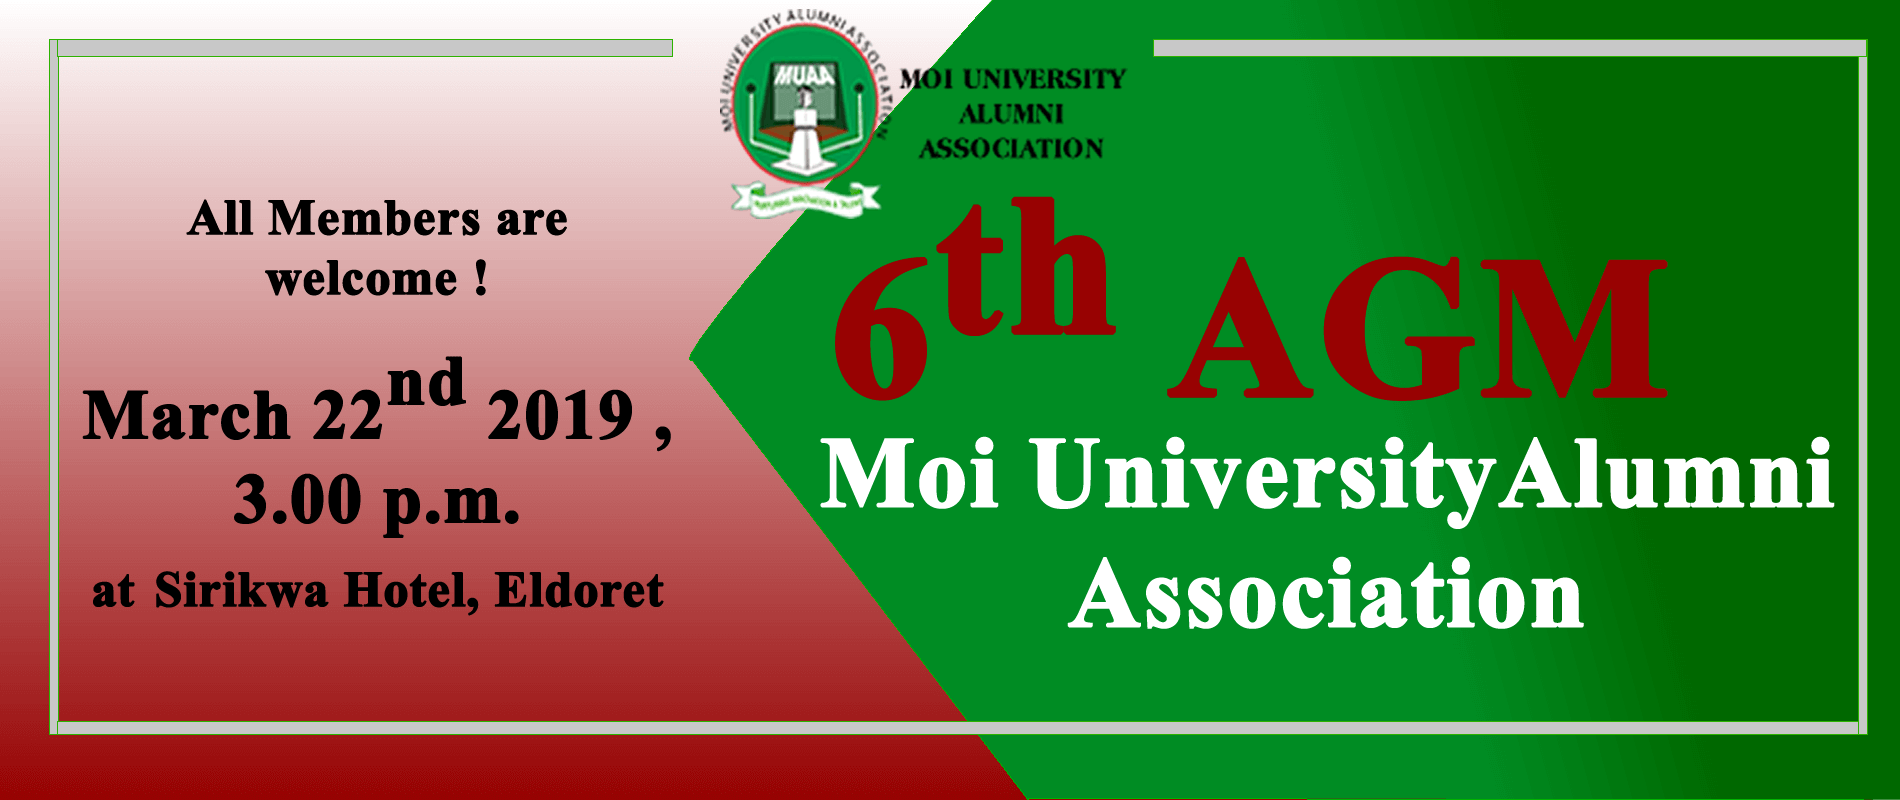 6th Moi University Alumni Association Annual General Meeting